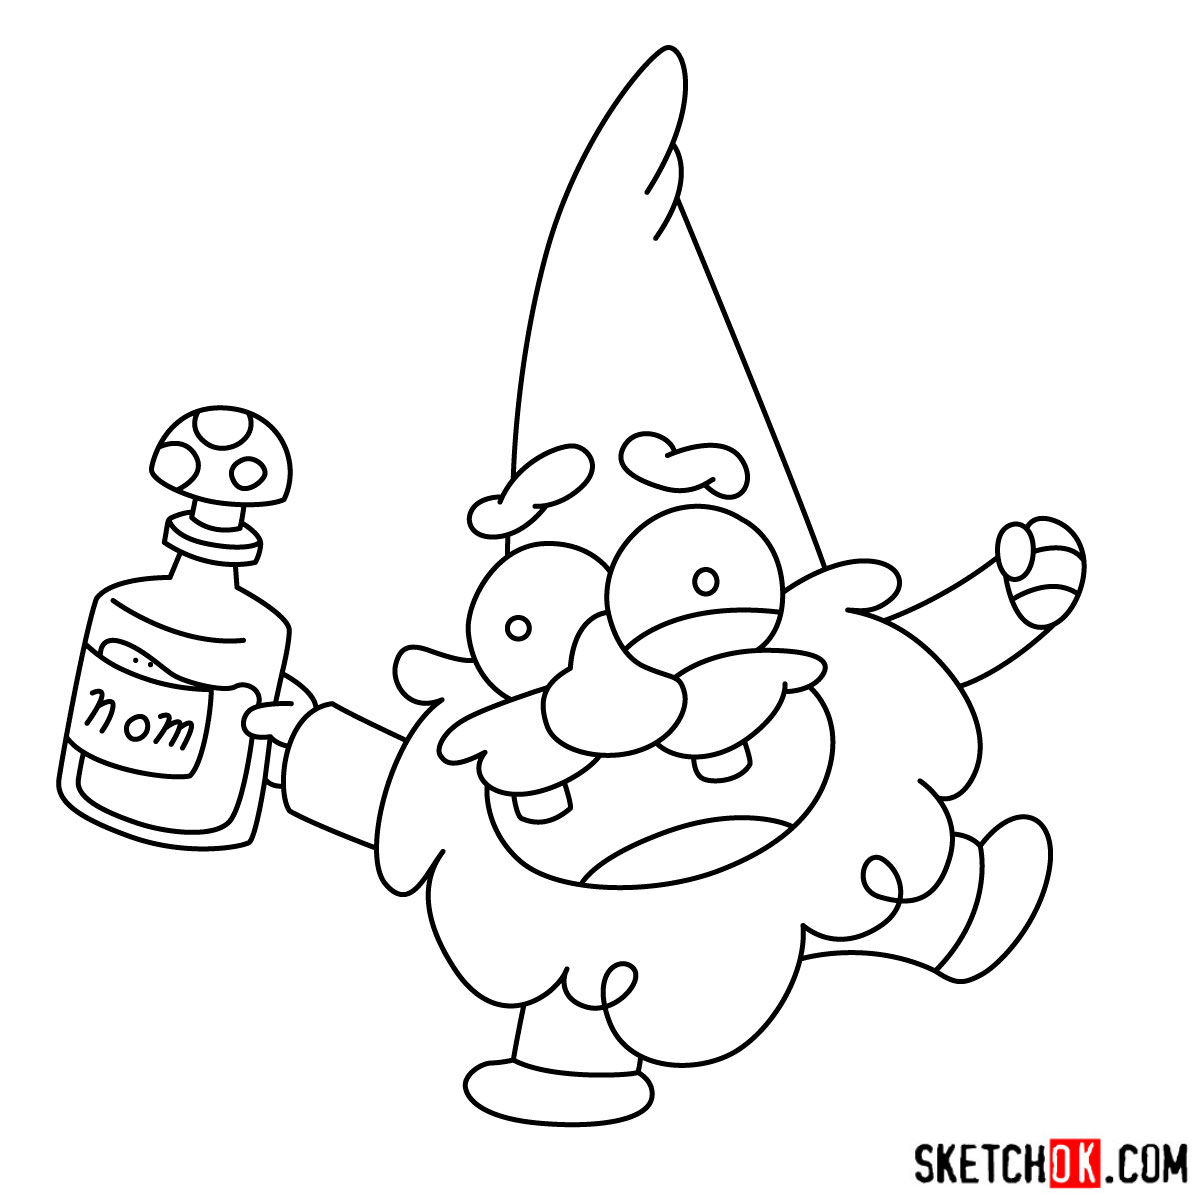 How to draw Gnome from Gravity Falls - step 09